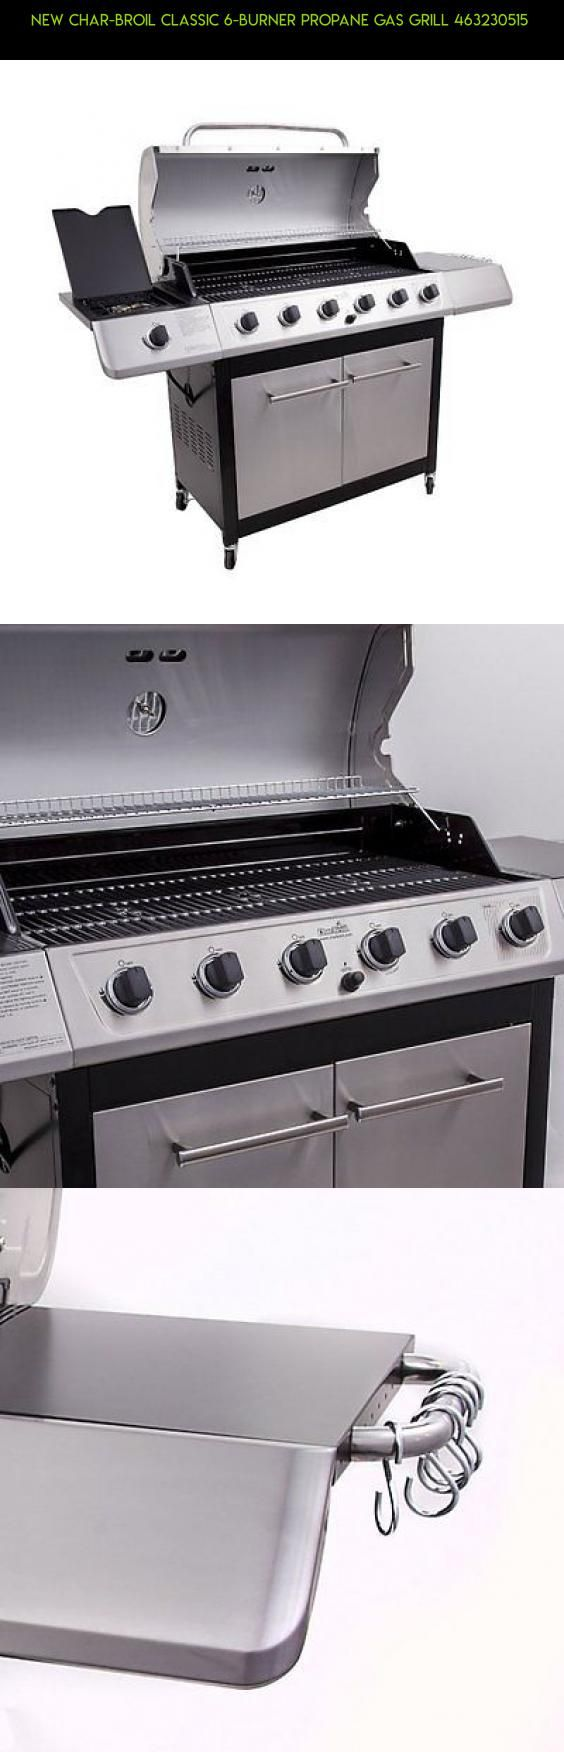 New Char-Broil Classic 6-Burner Propane Gas Grill 463230515  #gadgets #shopping #camera #burner #kit #tech #plans #fpv #technology #products #6 #racing #grills #parts #drone